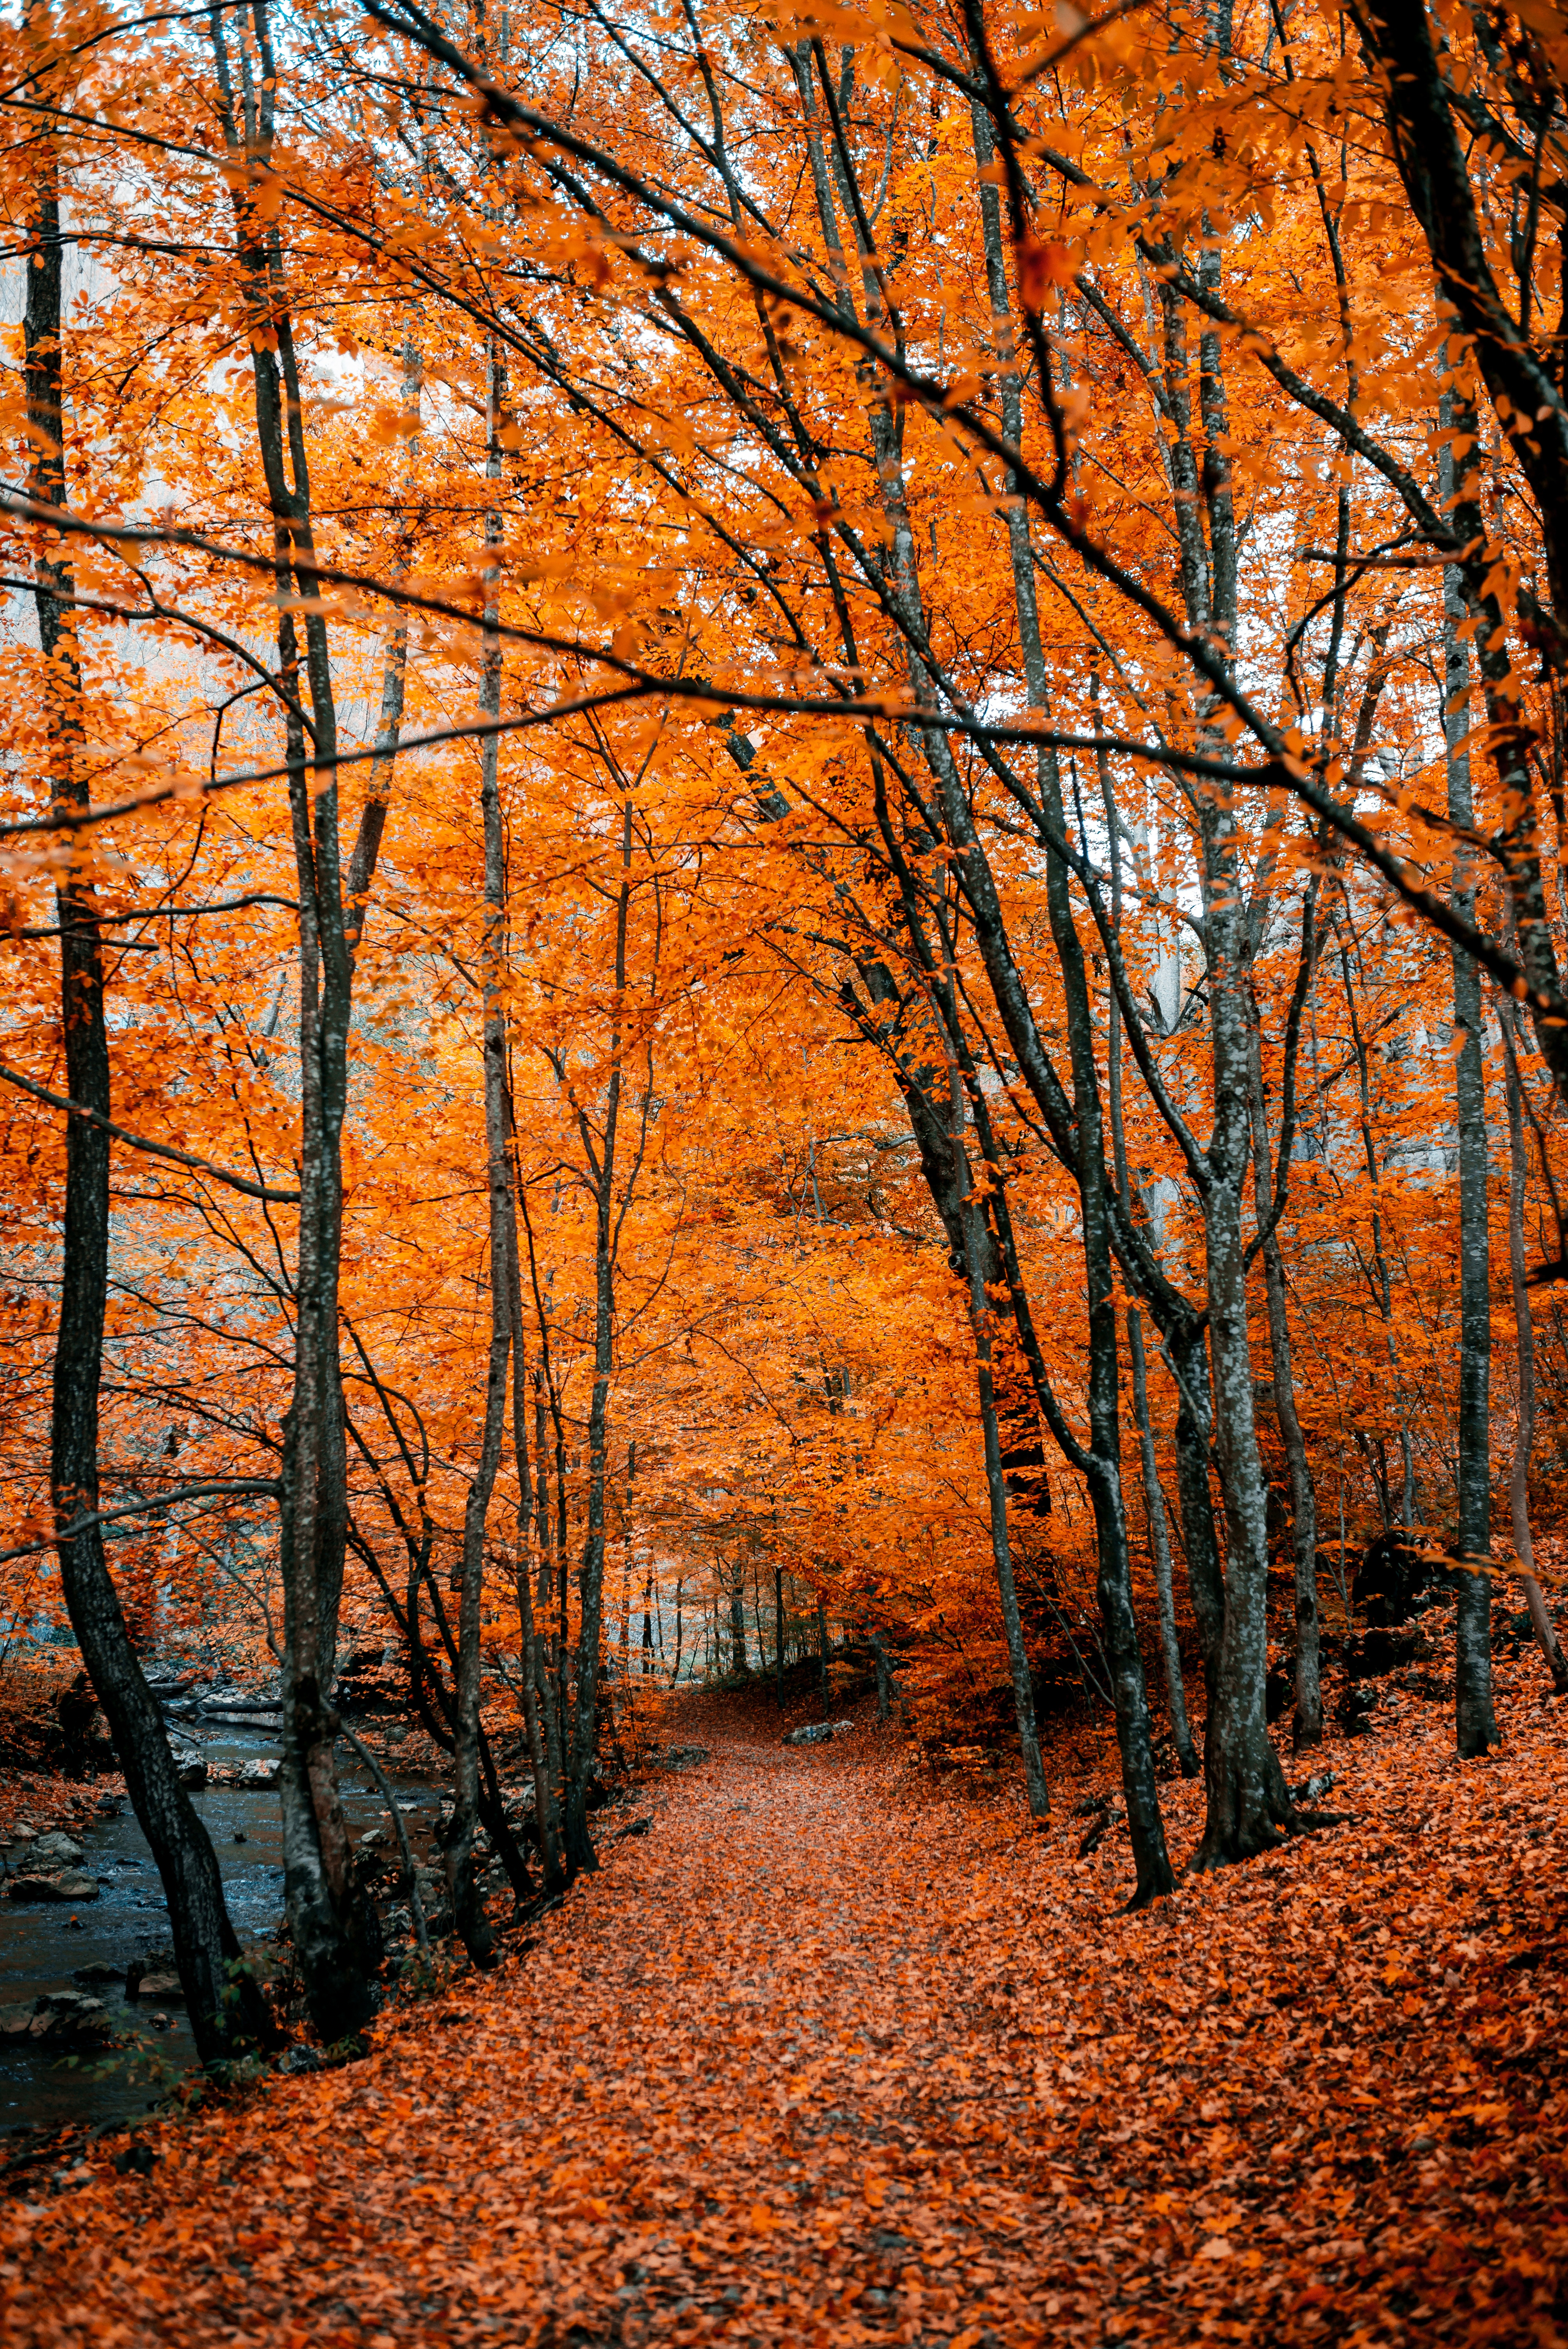 Download free Autumn HD pictures